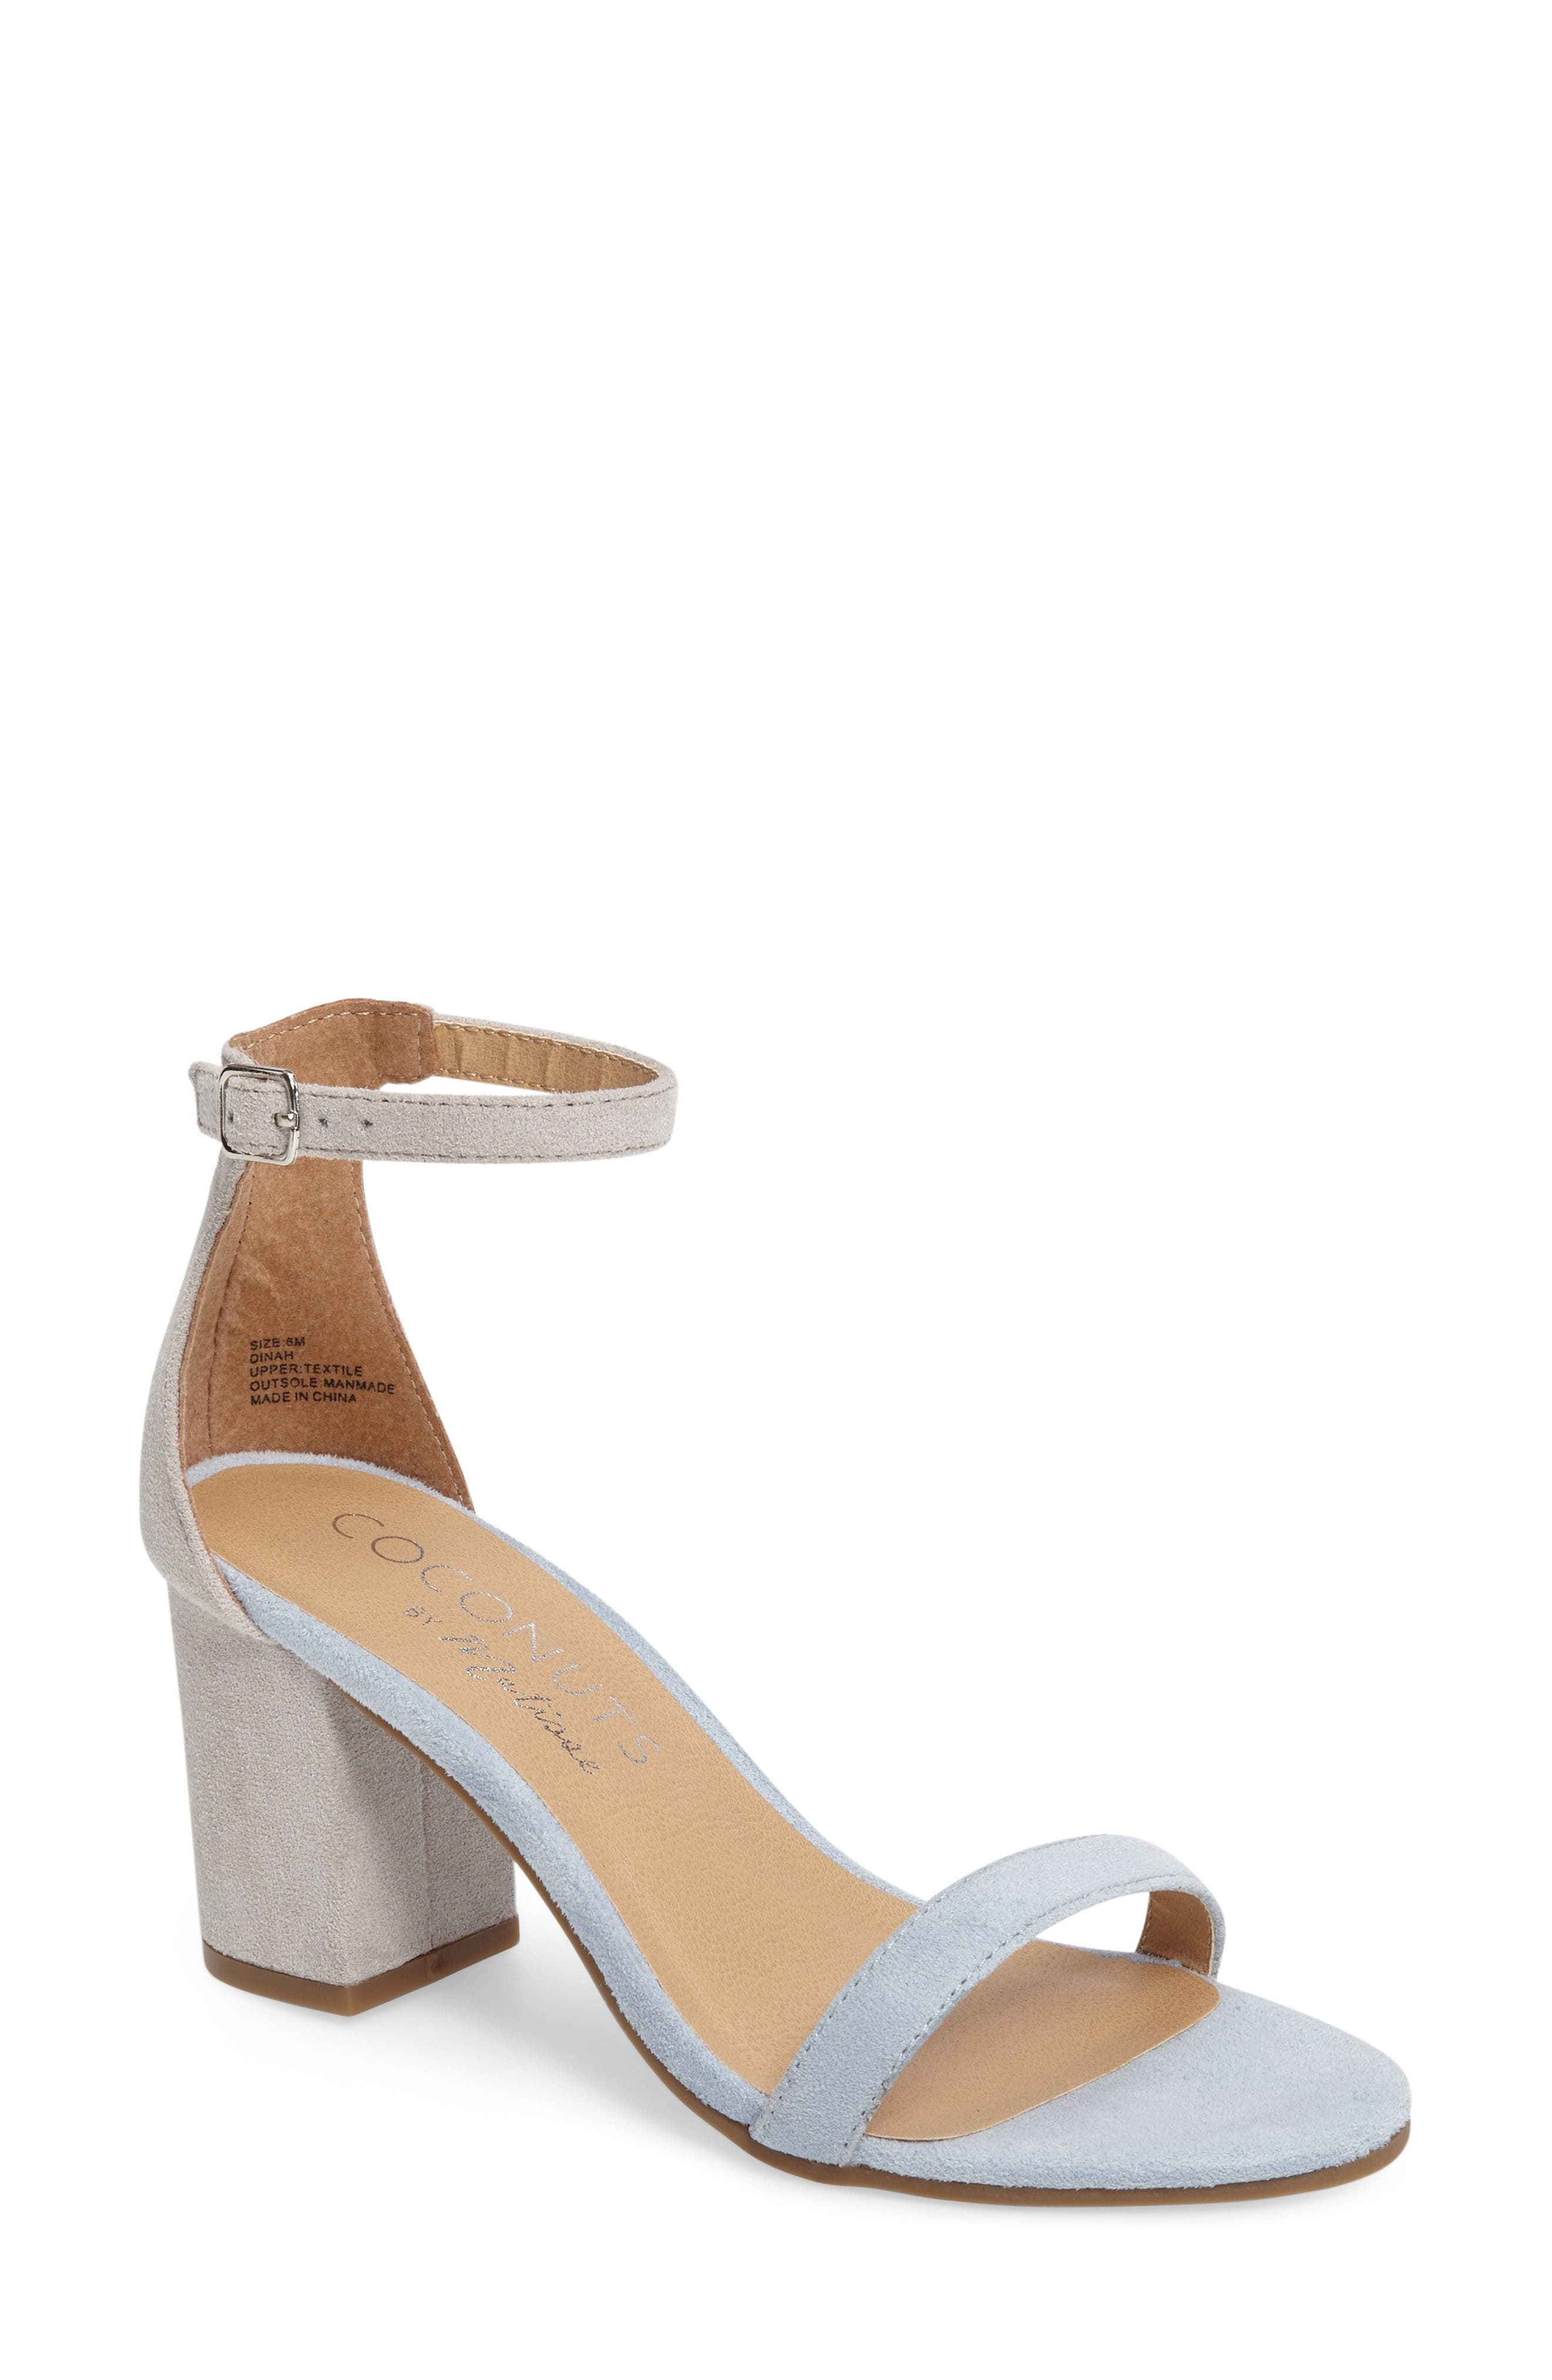 Main Image - Coconuts by Matisse Dinah Ankle Strap Sandal (Women)